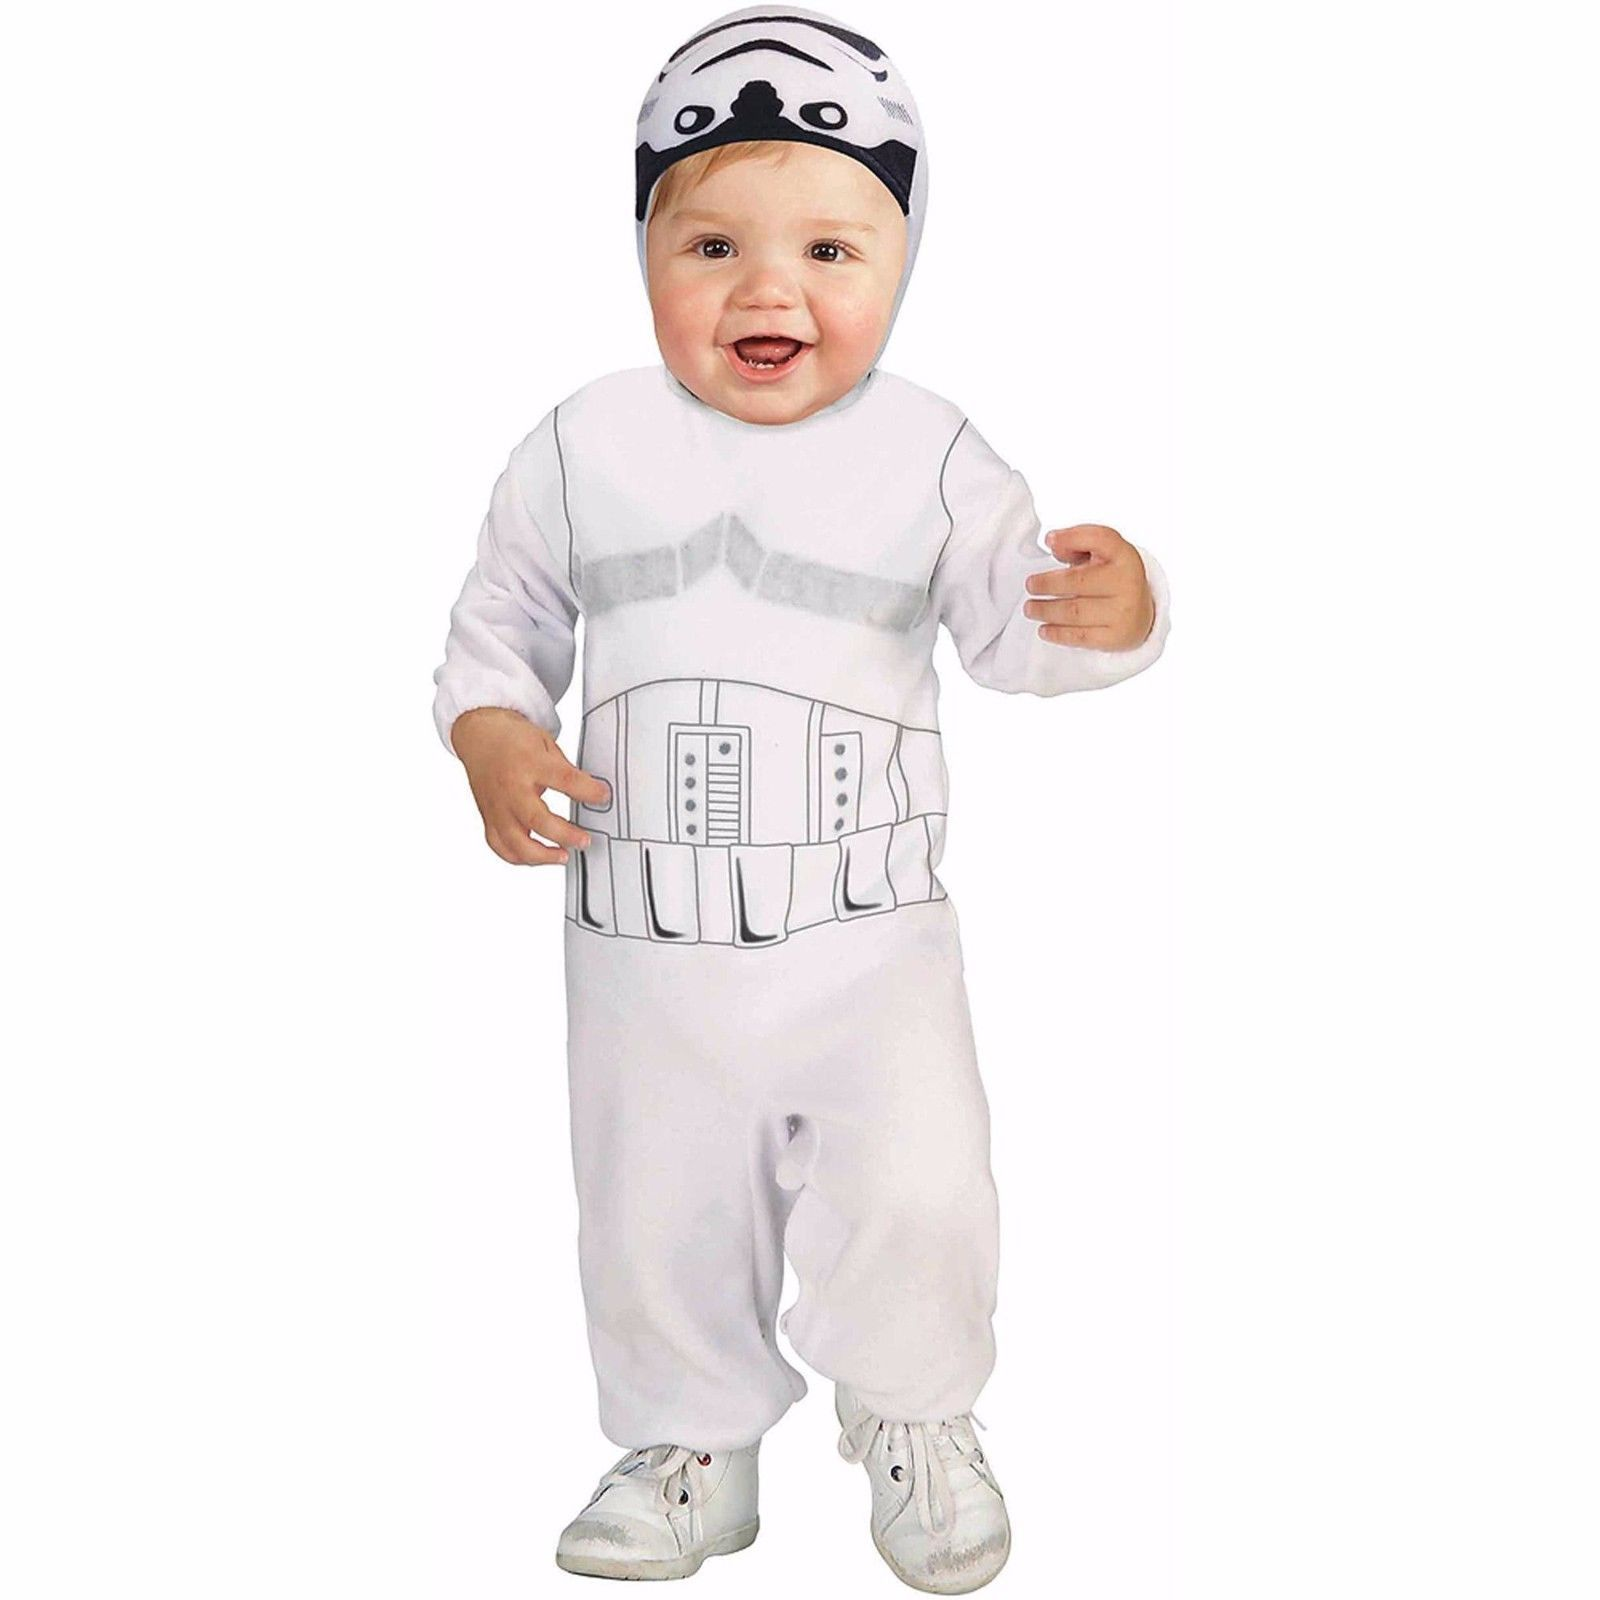 NEW NIP Boys or Girls Toddler Star Wars Storm Trooper Costume 2T